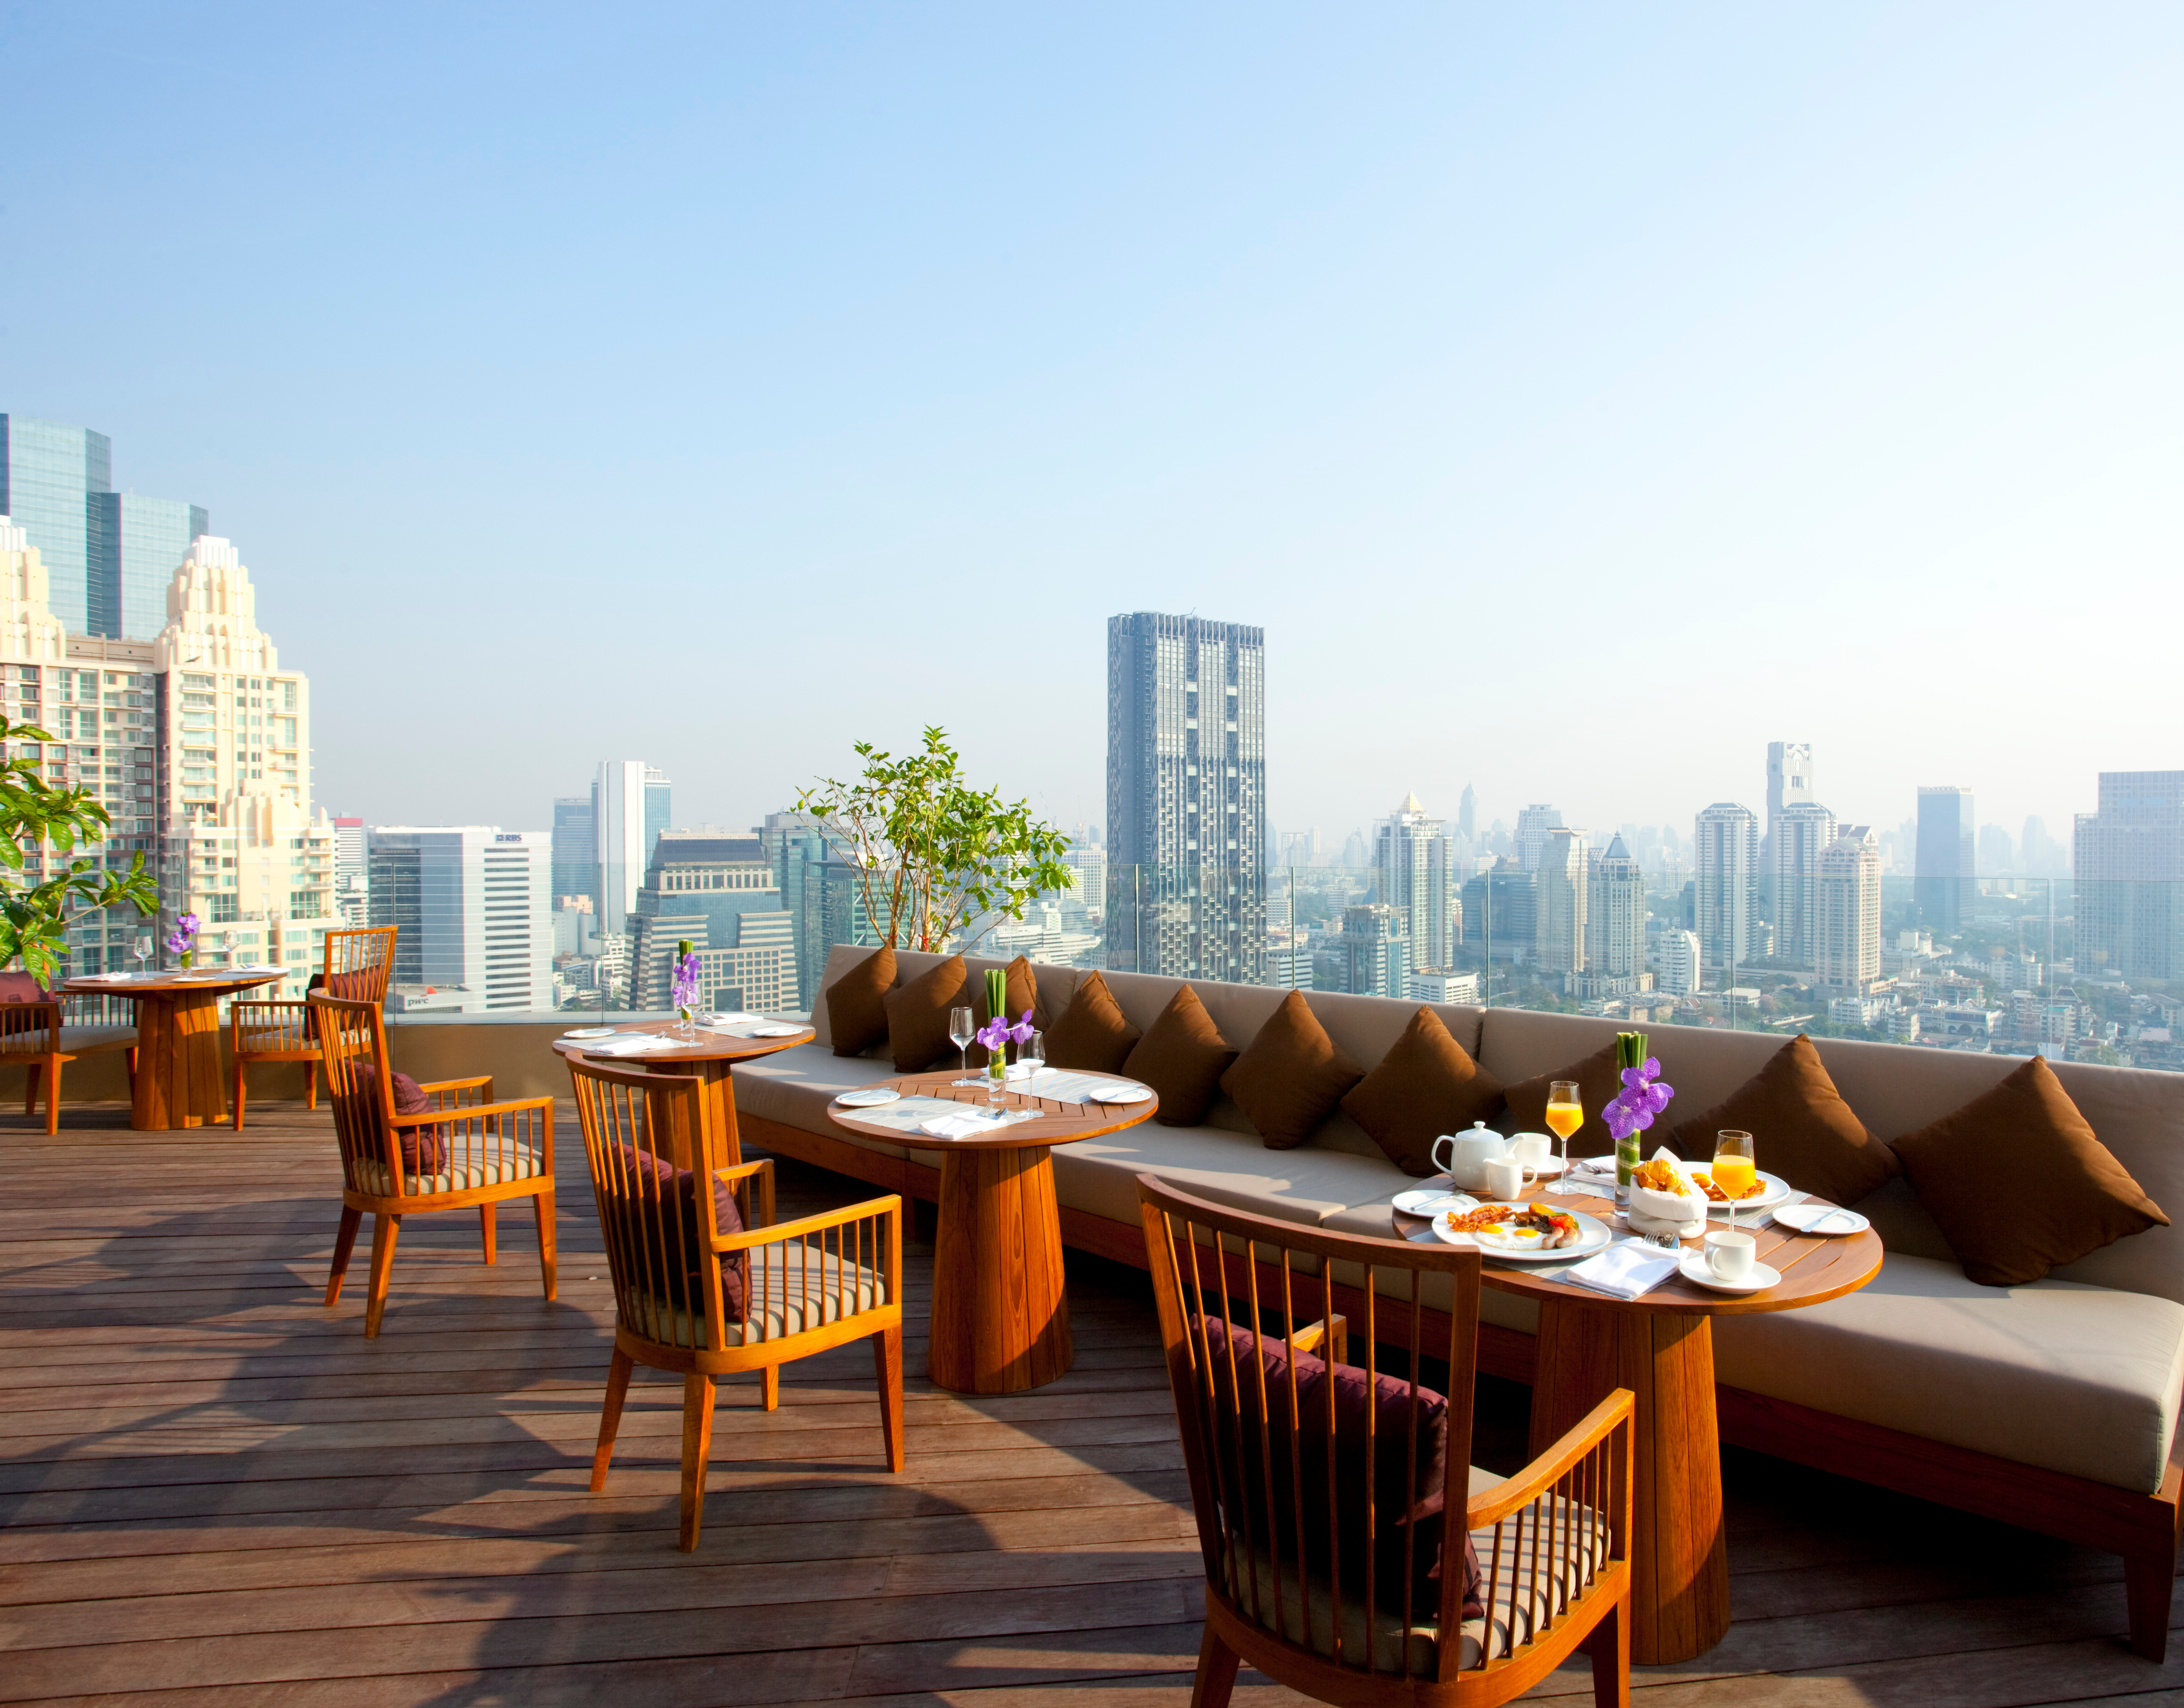 45335888-h1-kasara_guests_enjoy_a_relaxing_breakfast_with_a_view